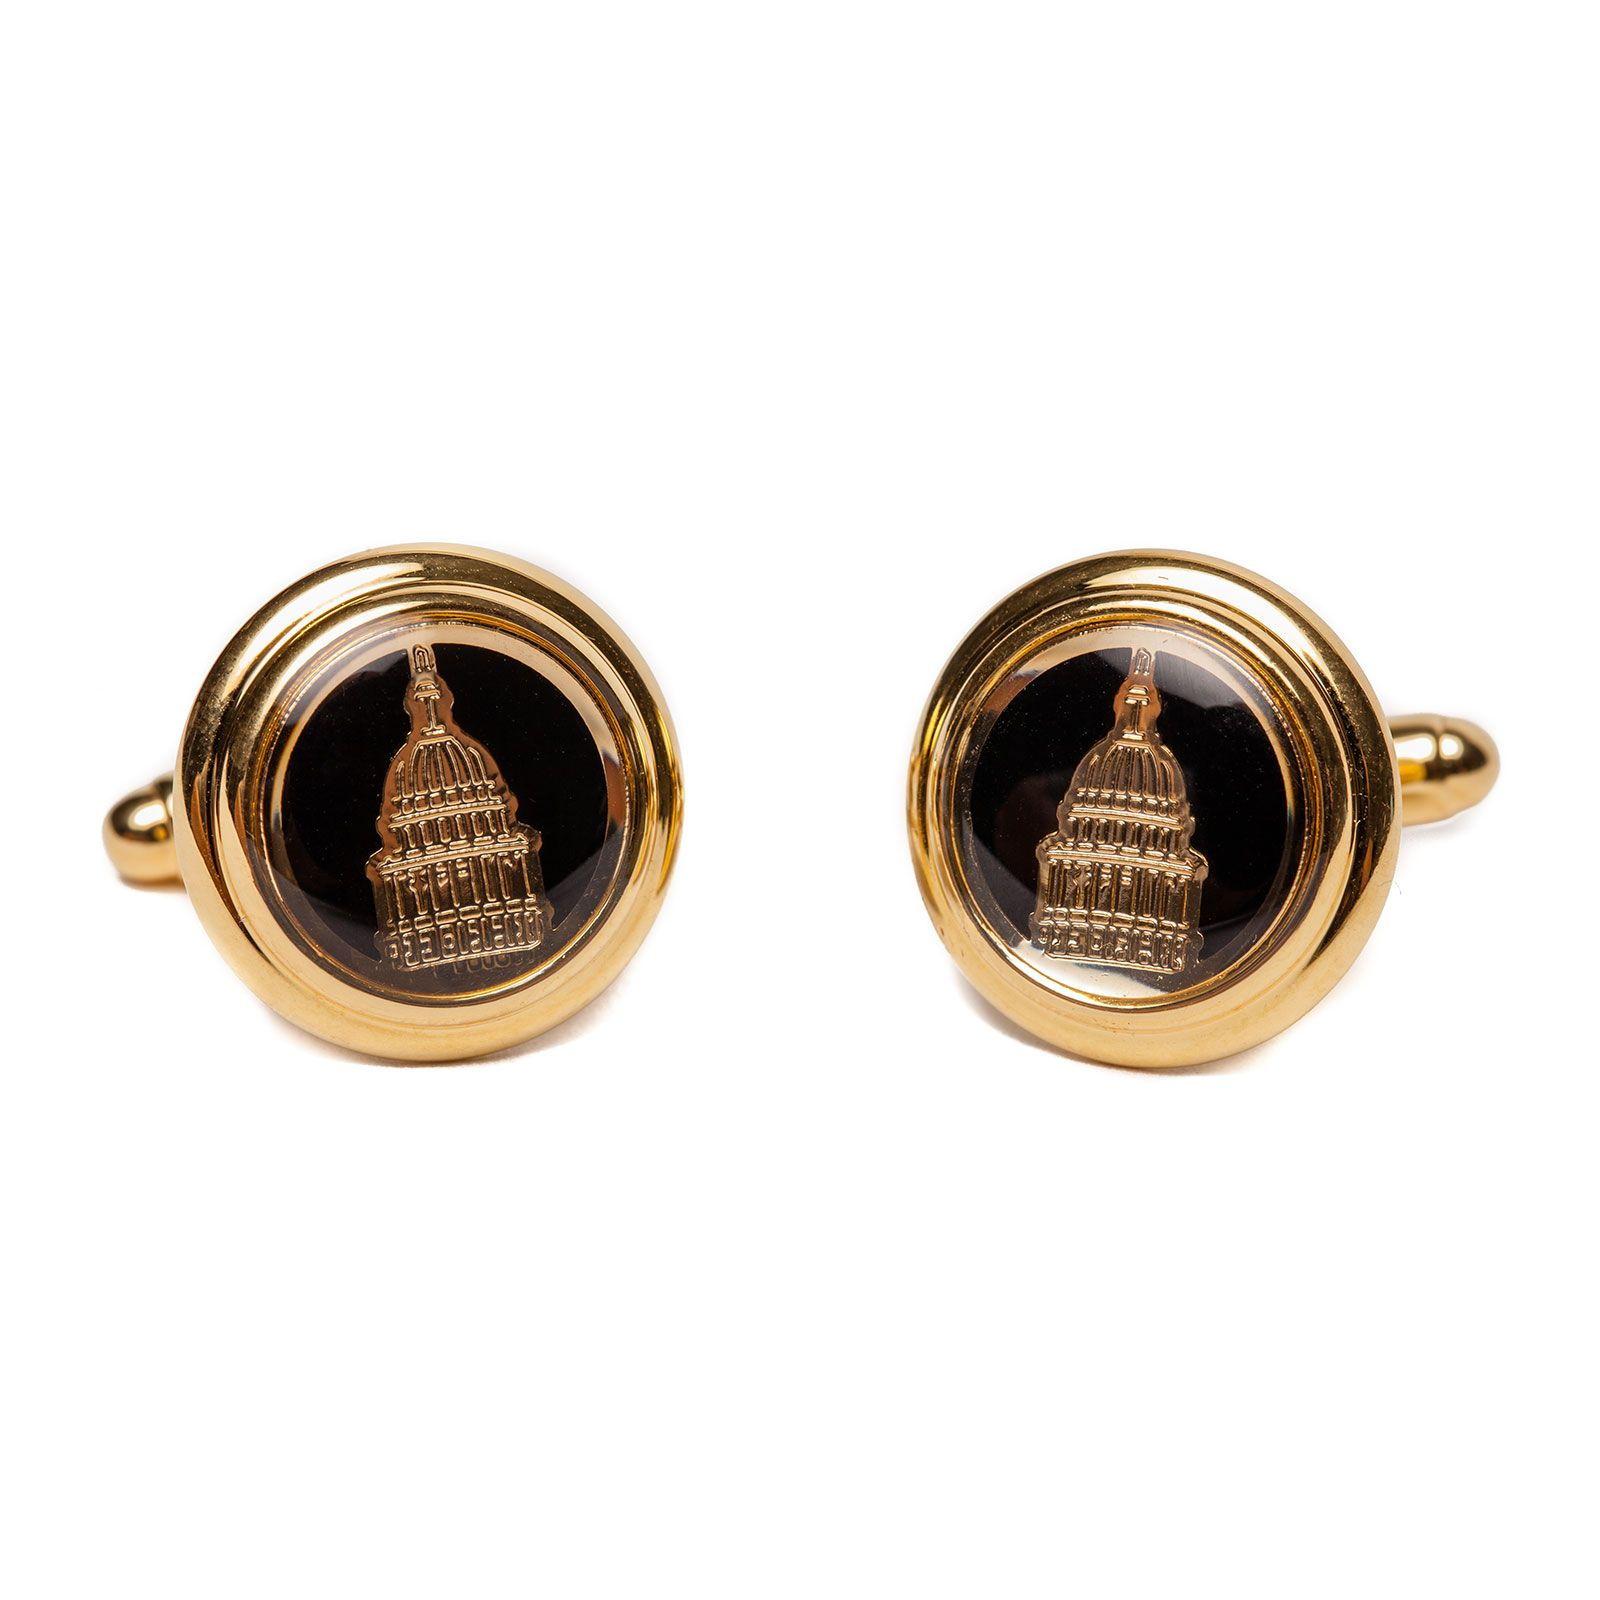 Texas Capitol Dome Gold Plated Cufflinks